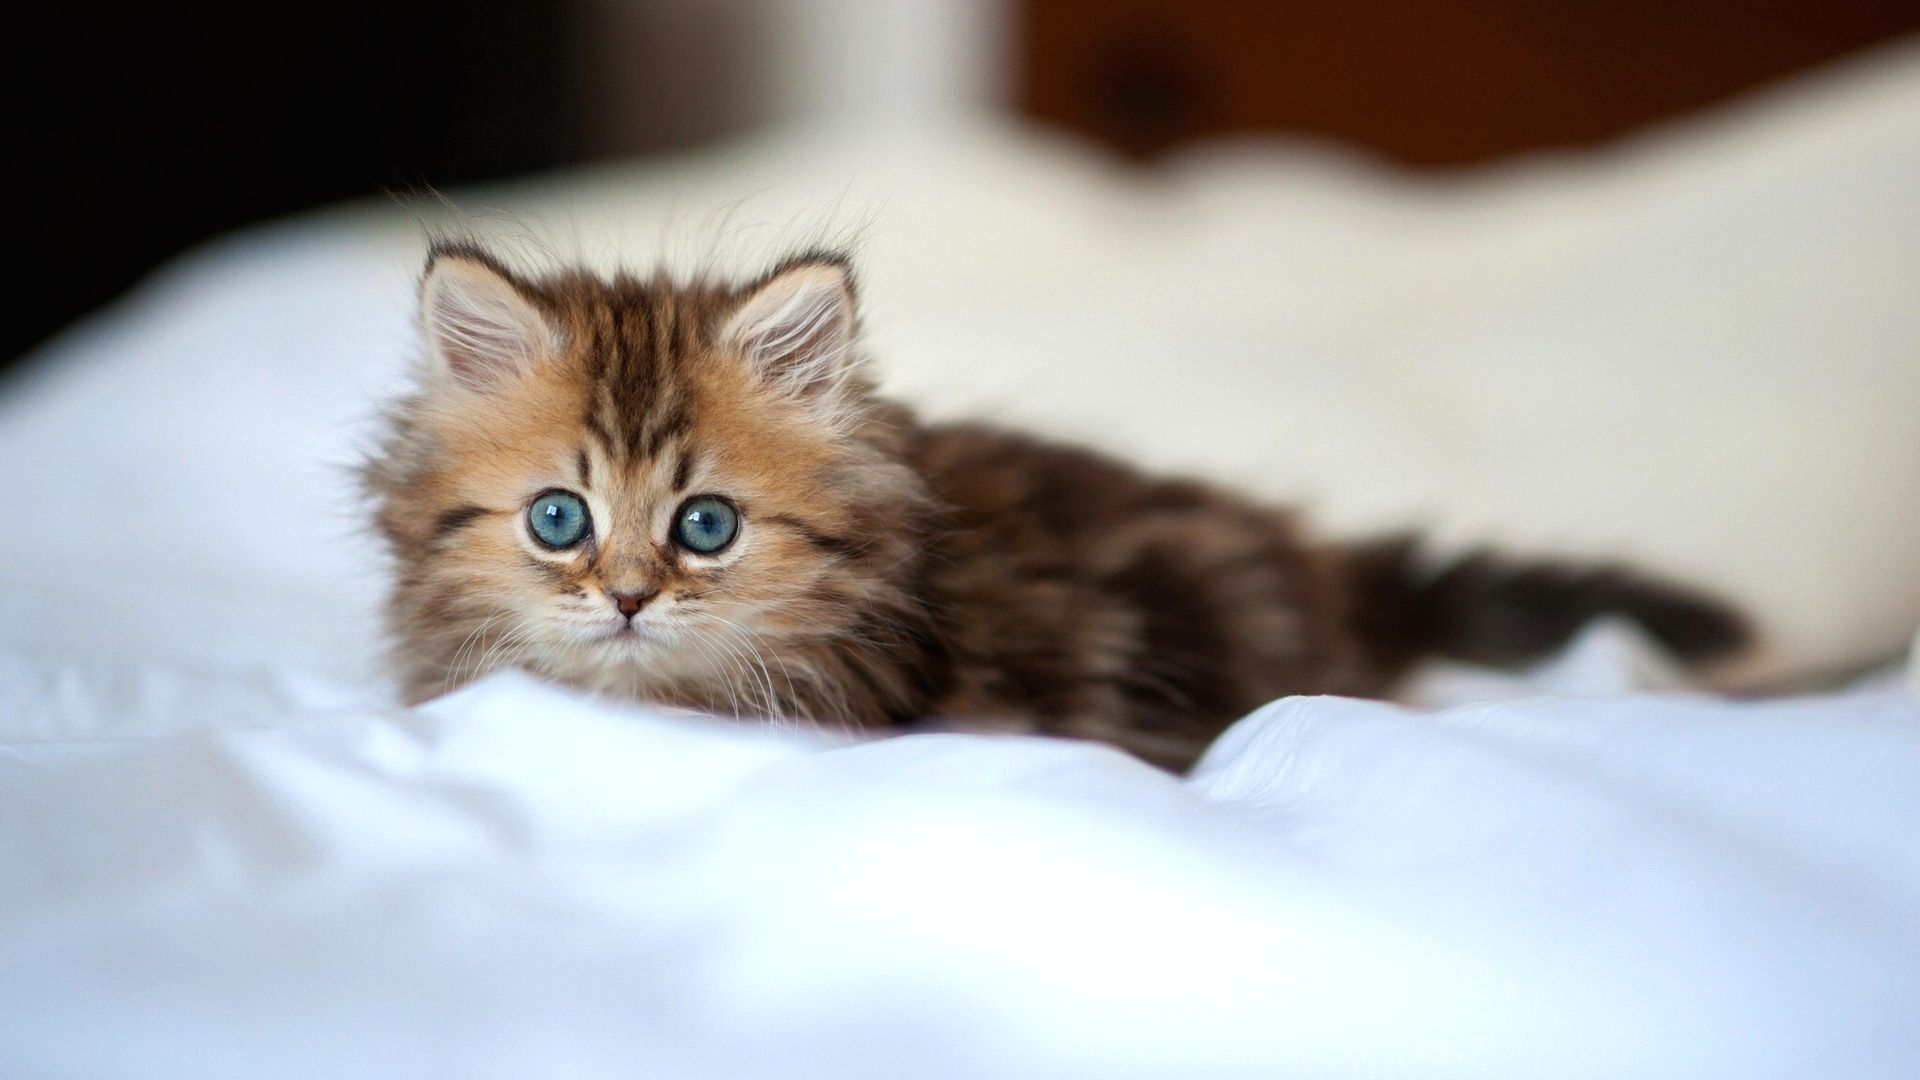 Petit chaton mignon 10 000 fonds d 39 cran hd gratuits et de qualit wallpapers hd - Image de petit chat ...